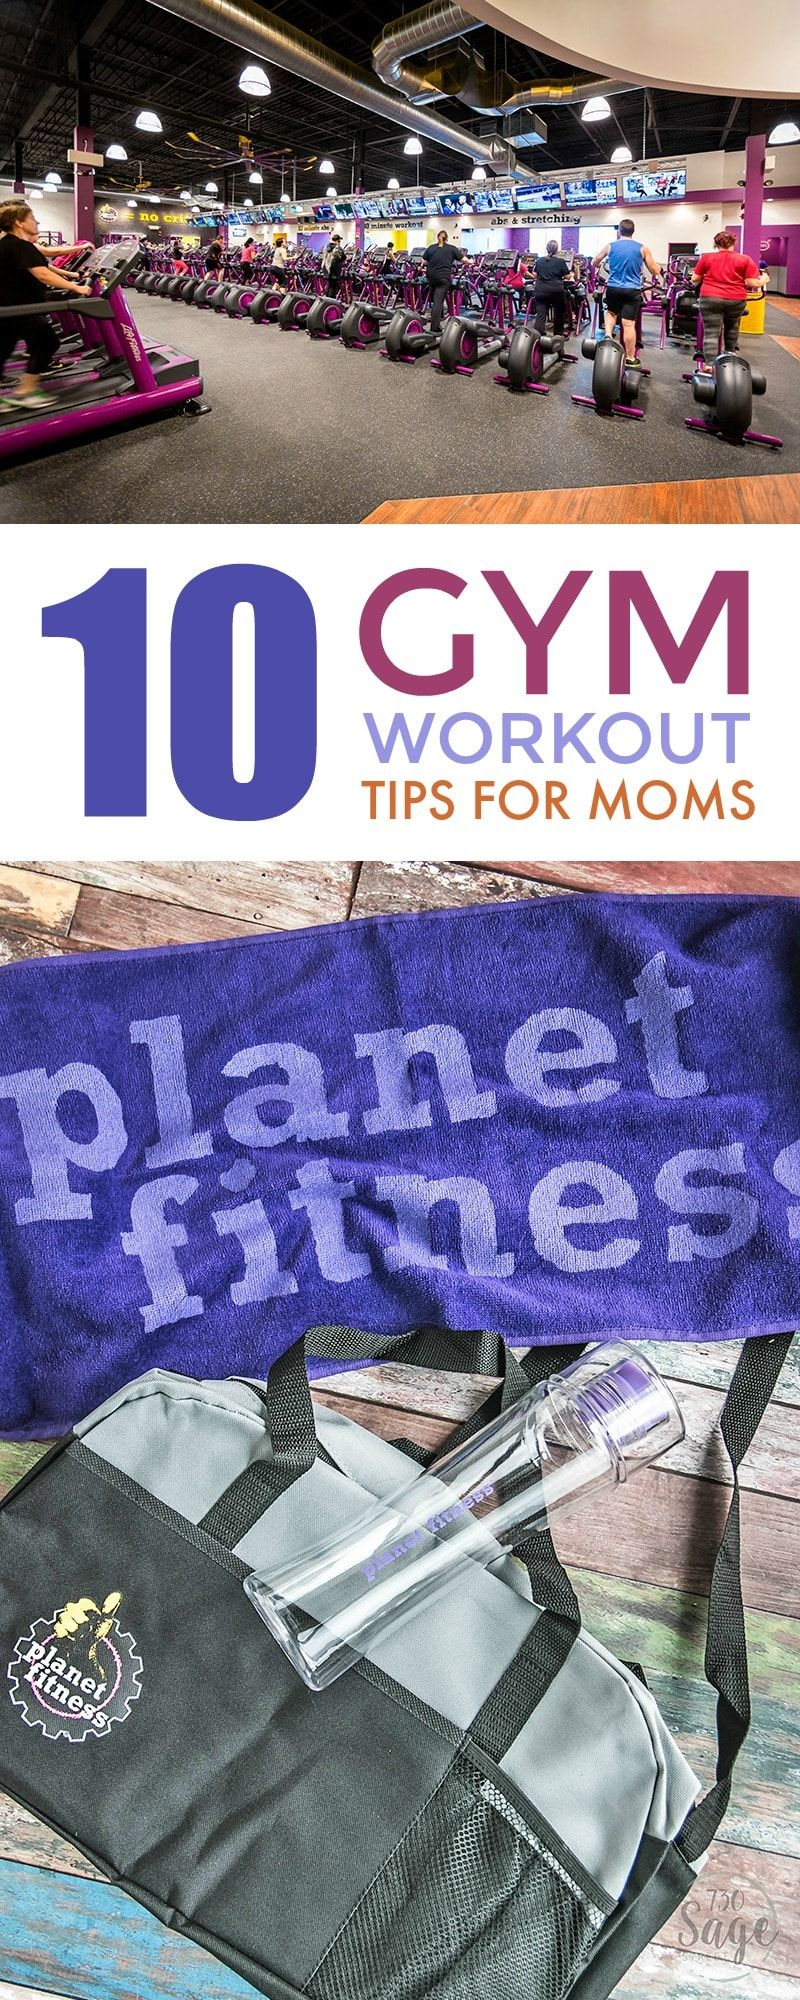 The gym doesn't have to be a scary place! 10 Gym Workout Tips for Moms. Join for $5 down & $10/mo with Planet Fitness Membership Specials w/o commitments. AD #Judgementfreezone #Planetfitness https://www.730sagestreet.com/planet-fitness-membership-specials/